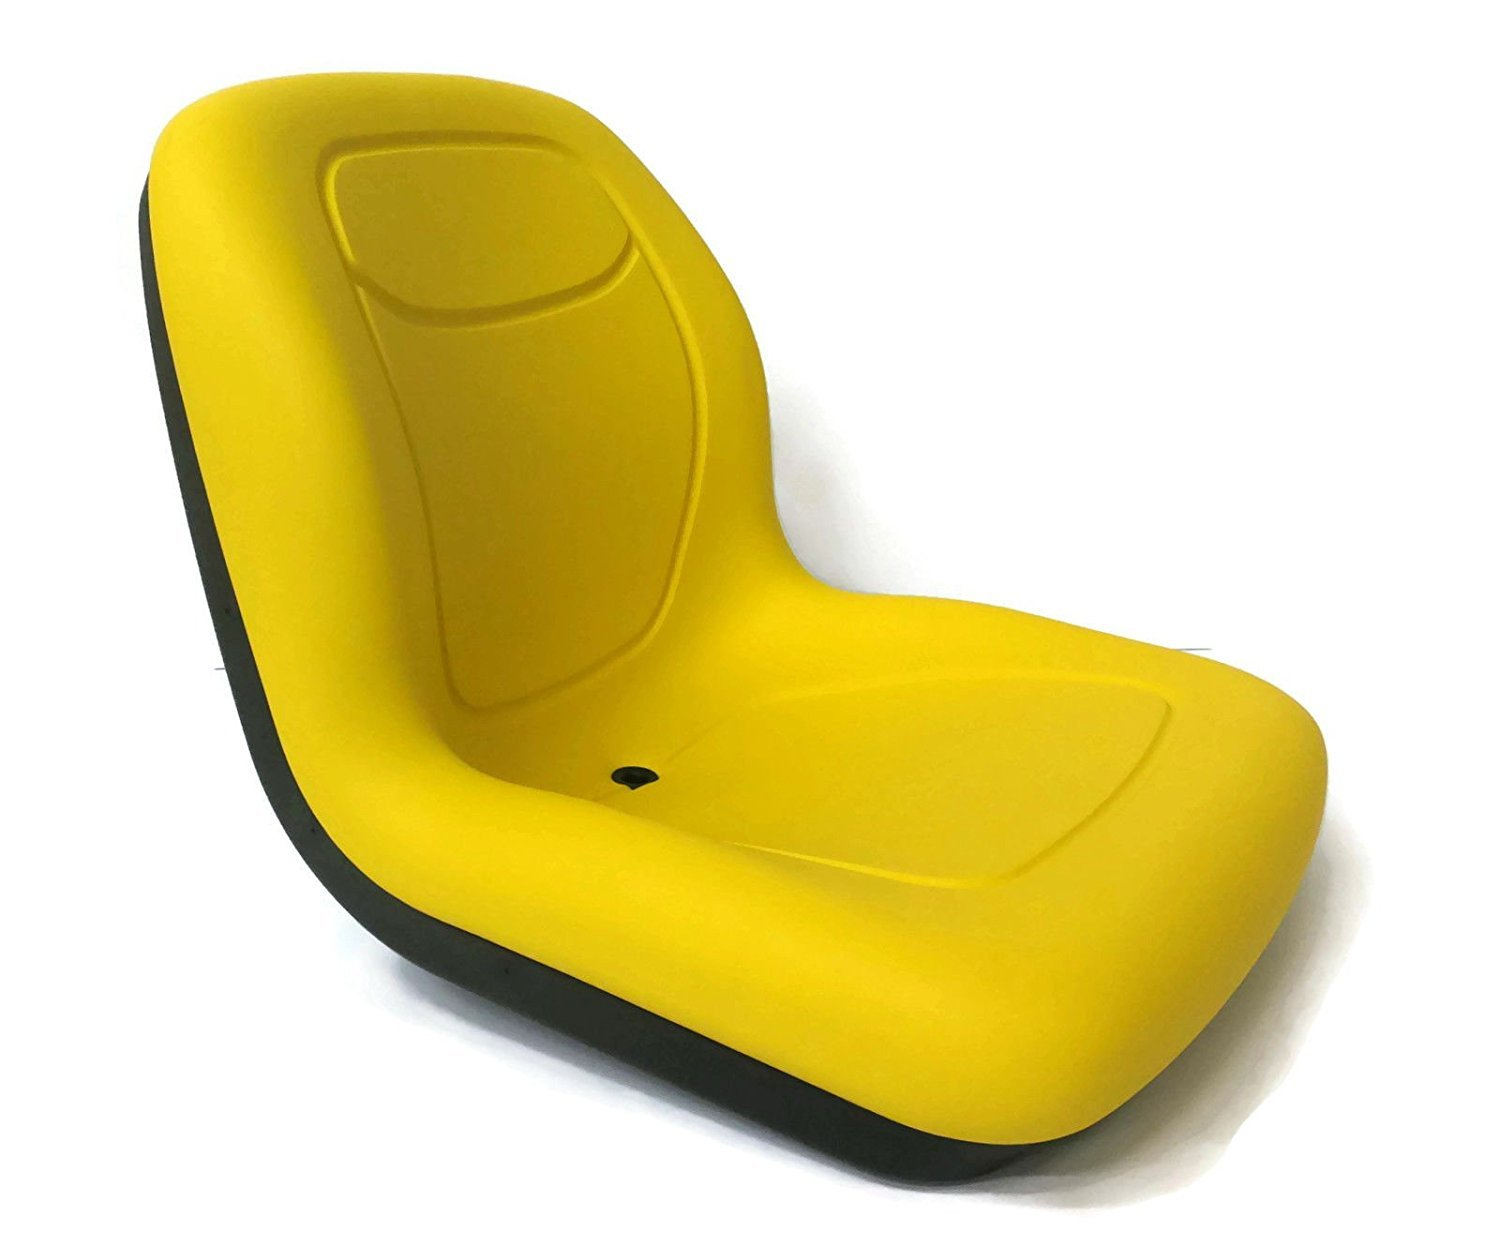 Amazoncom Welironly New Yellow High Back Seat For John Deere Lawn